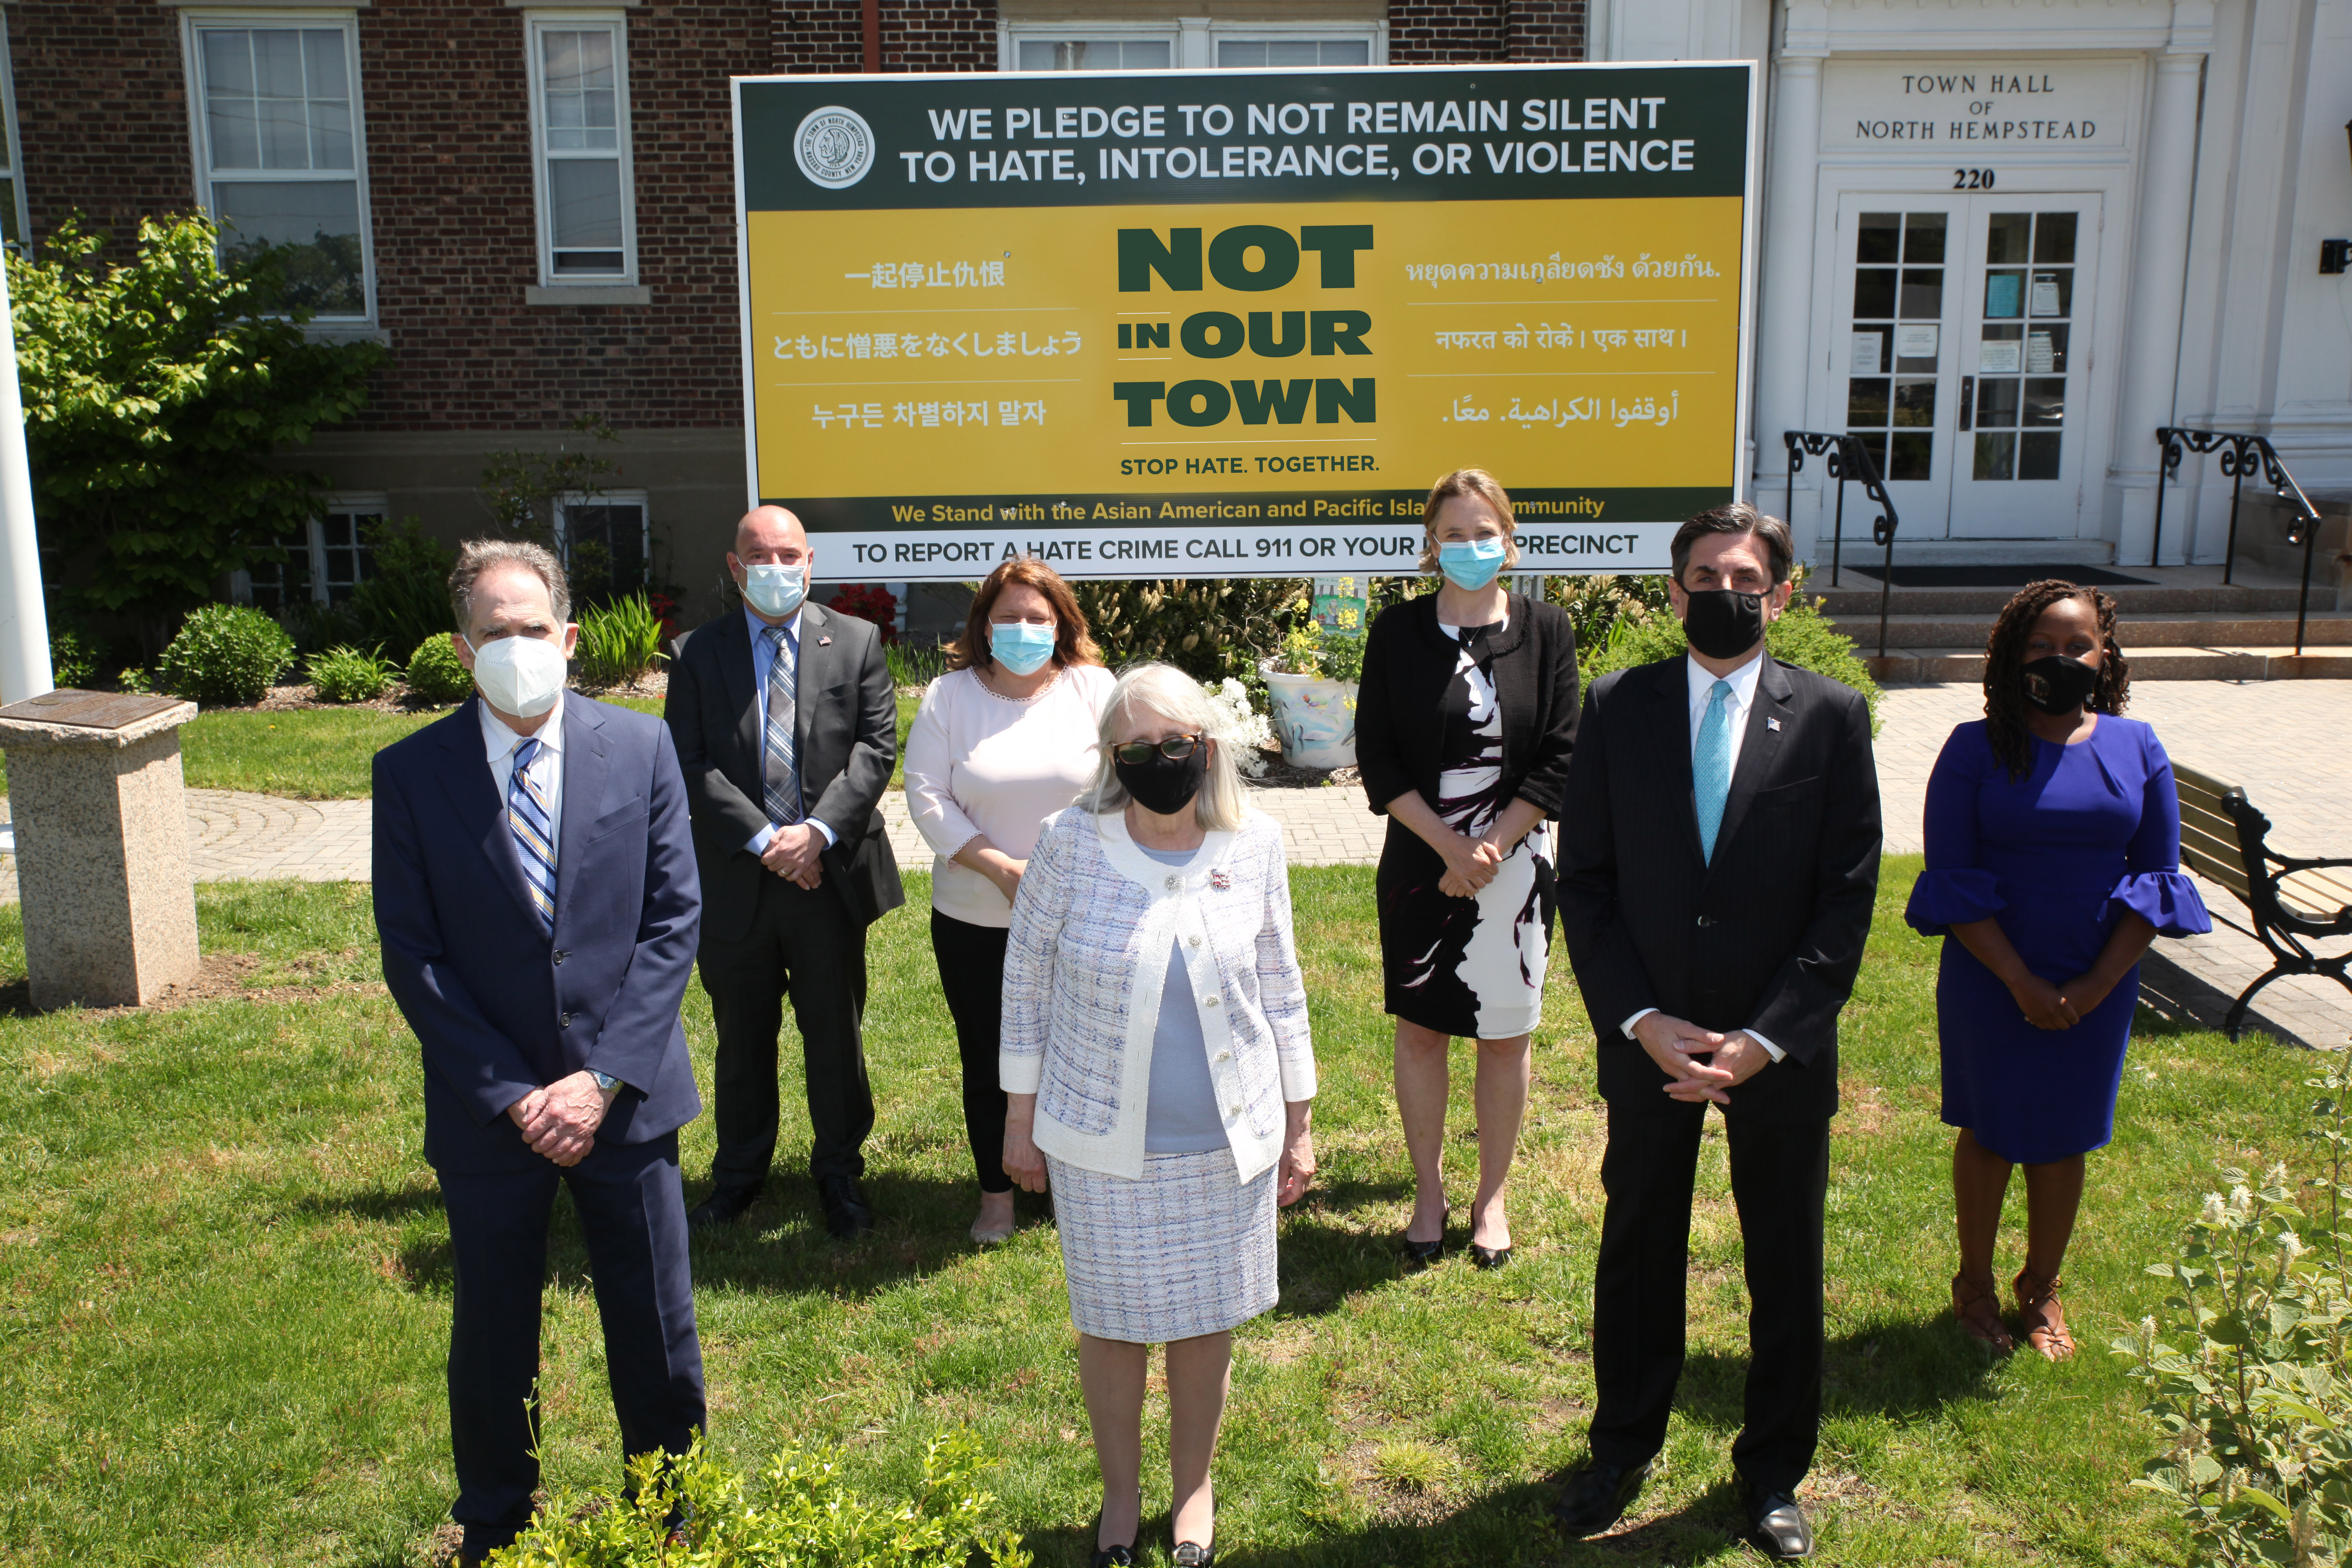 North Hempstead announces new Not In Our Town signs featuring 'Stop Hate Together' in several languages